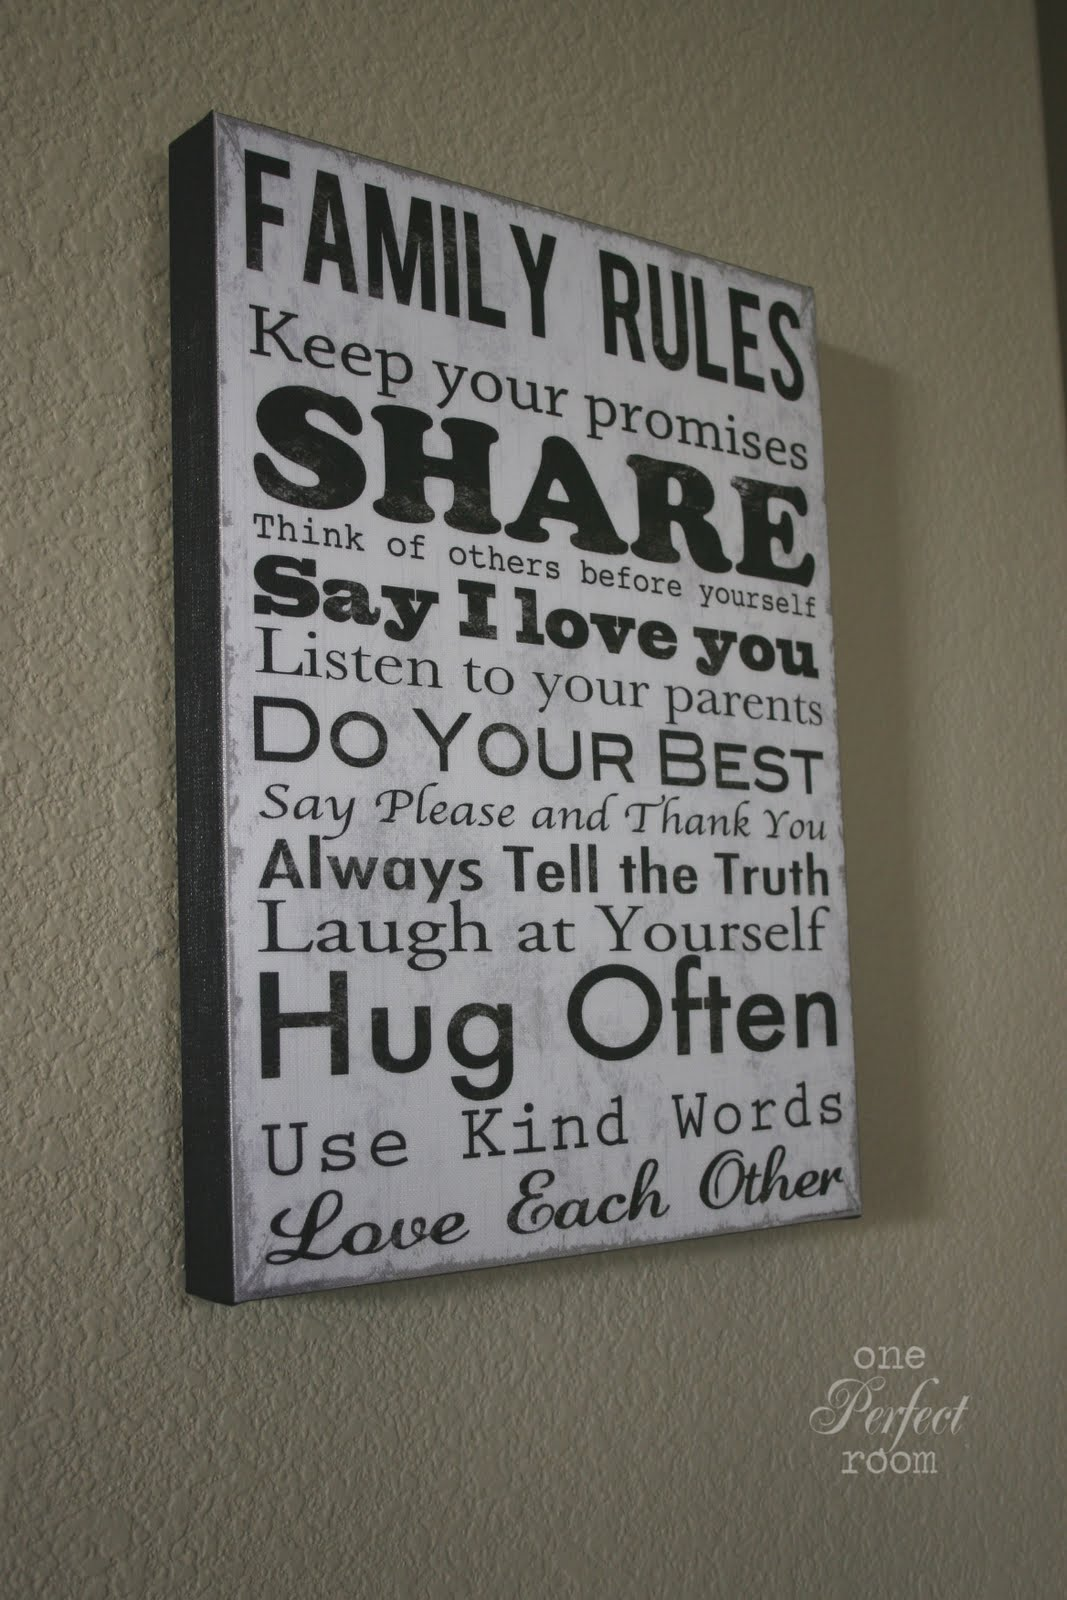 Family Rules Quotes. QuotesGram